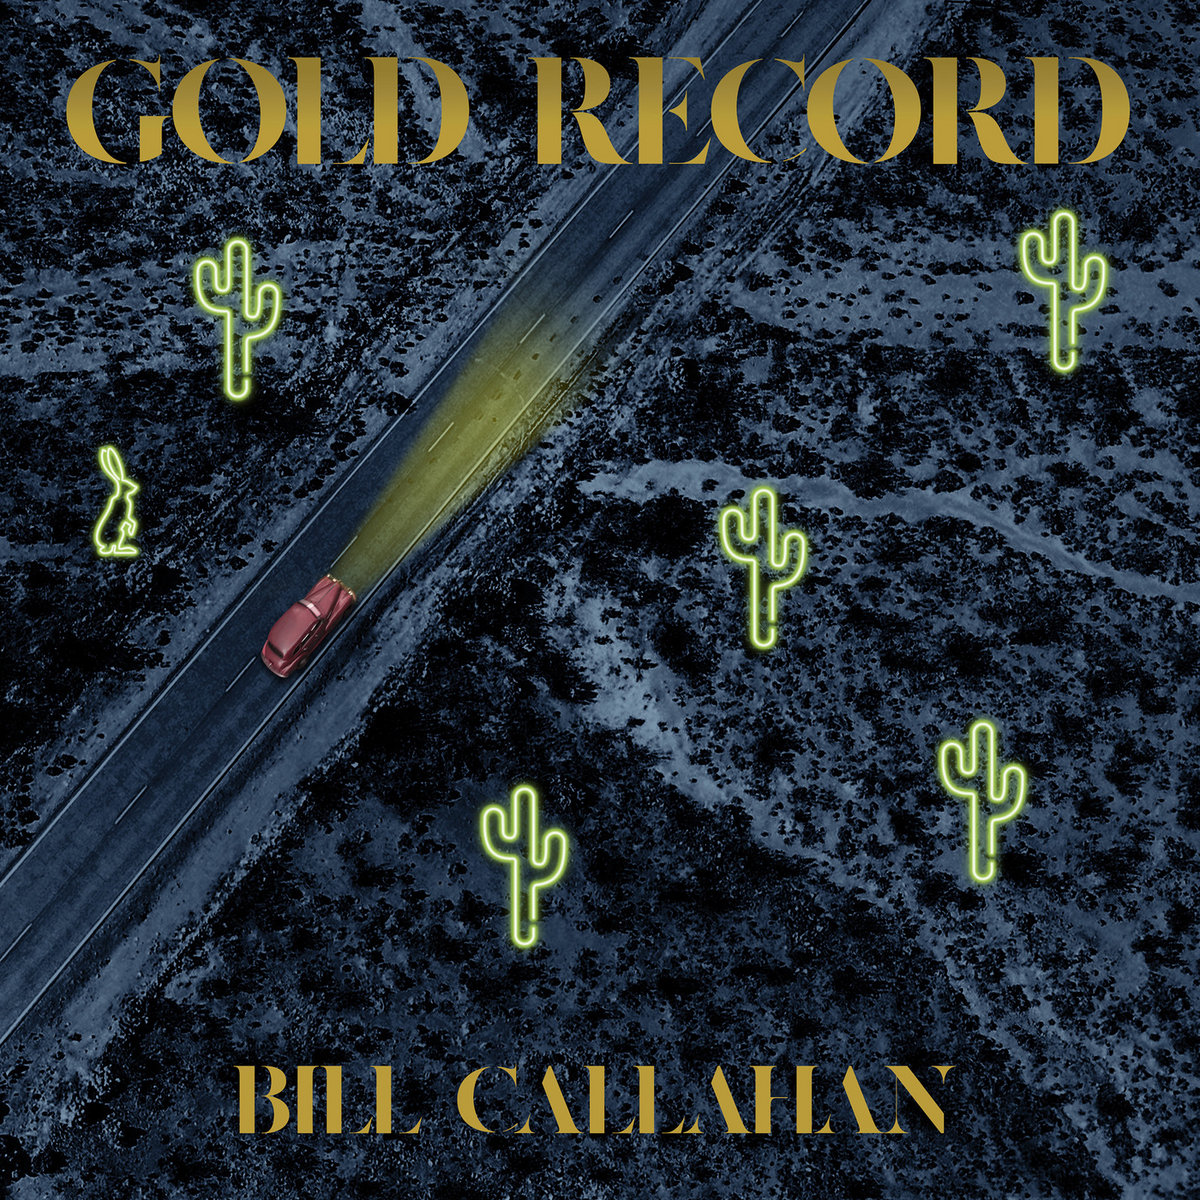 Gold Record by Bill Callahan album artwork cover art